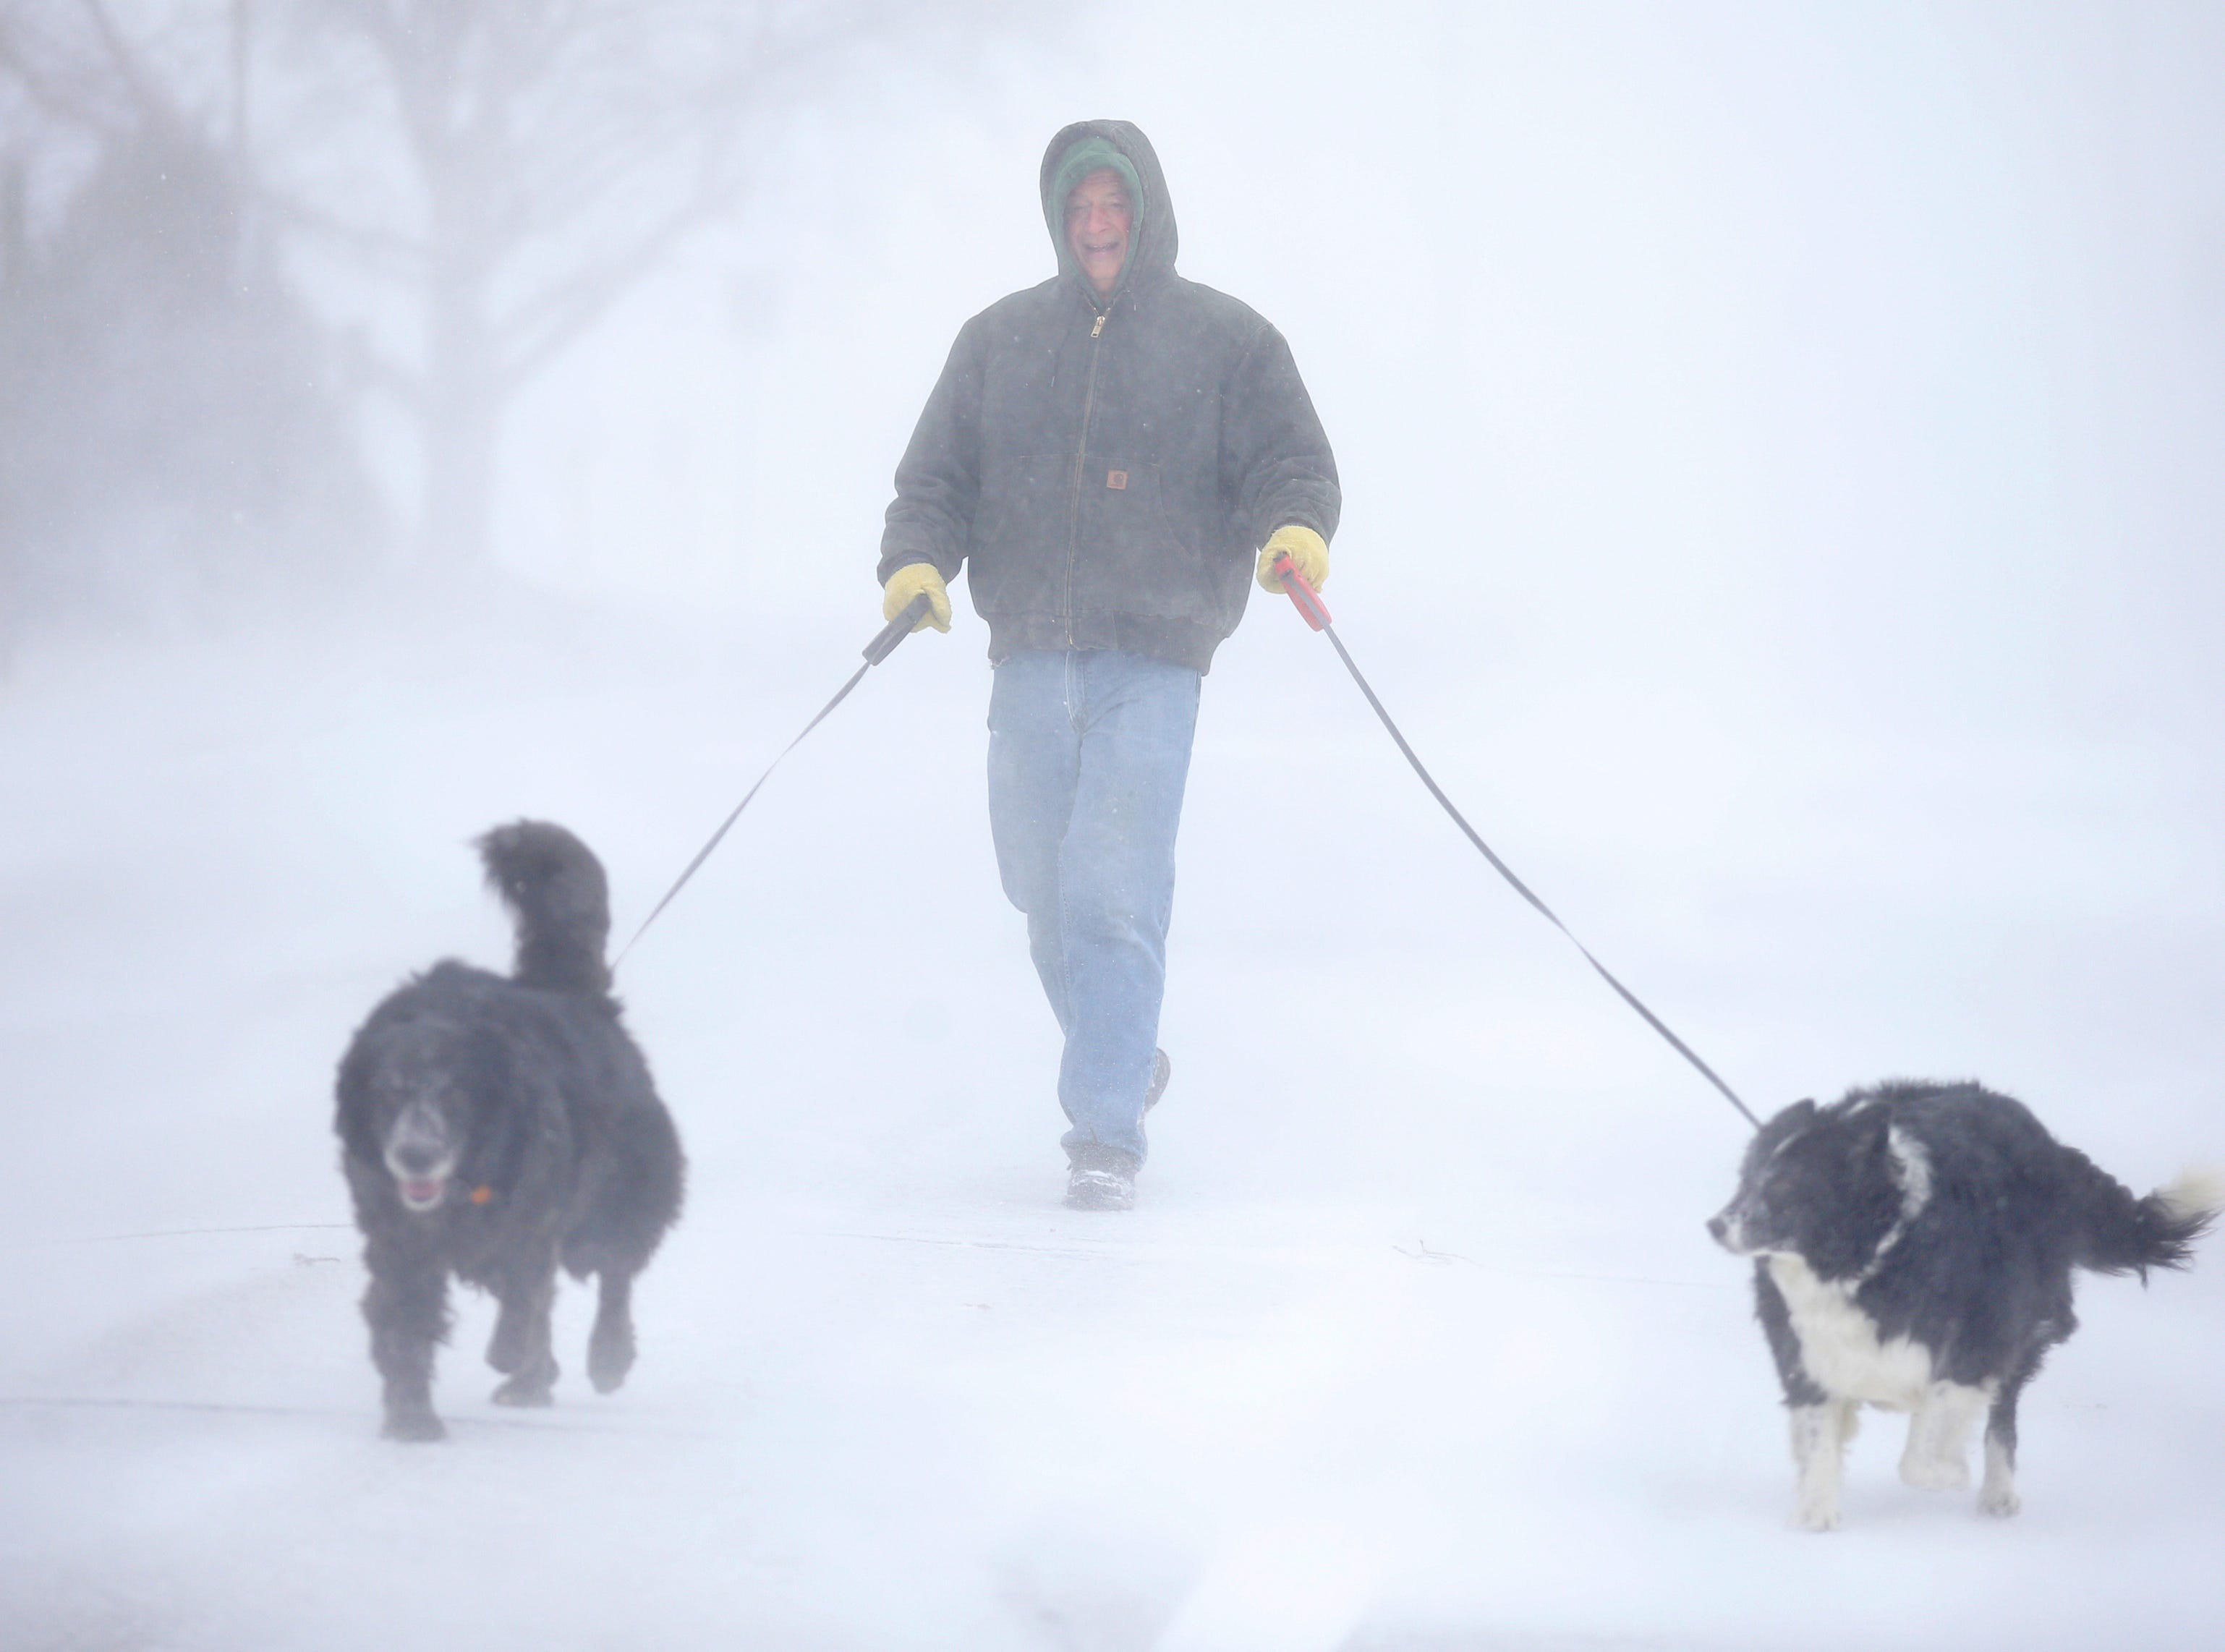 Tom Skaar laughs while walking his dogs during a blizzard March 13, 2019, in Cheyenne, Wyo. White-out conditions closed I-80, I-25, and U.S. 85, effectively closing off the state capital from Nebraska, Colorado and the rest of Wyoming.